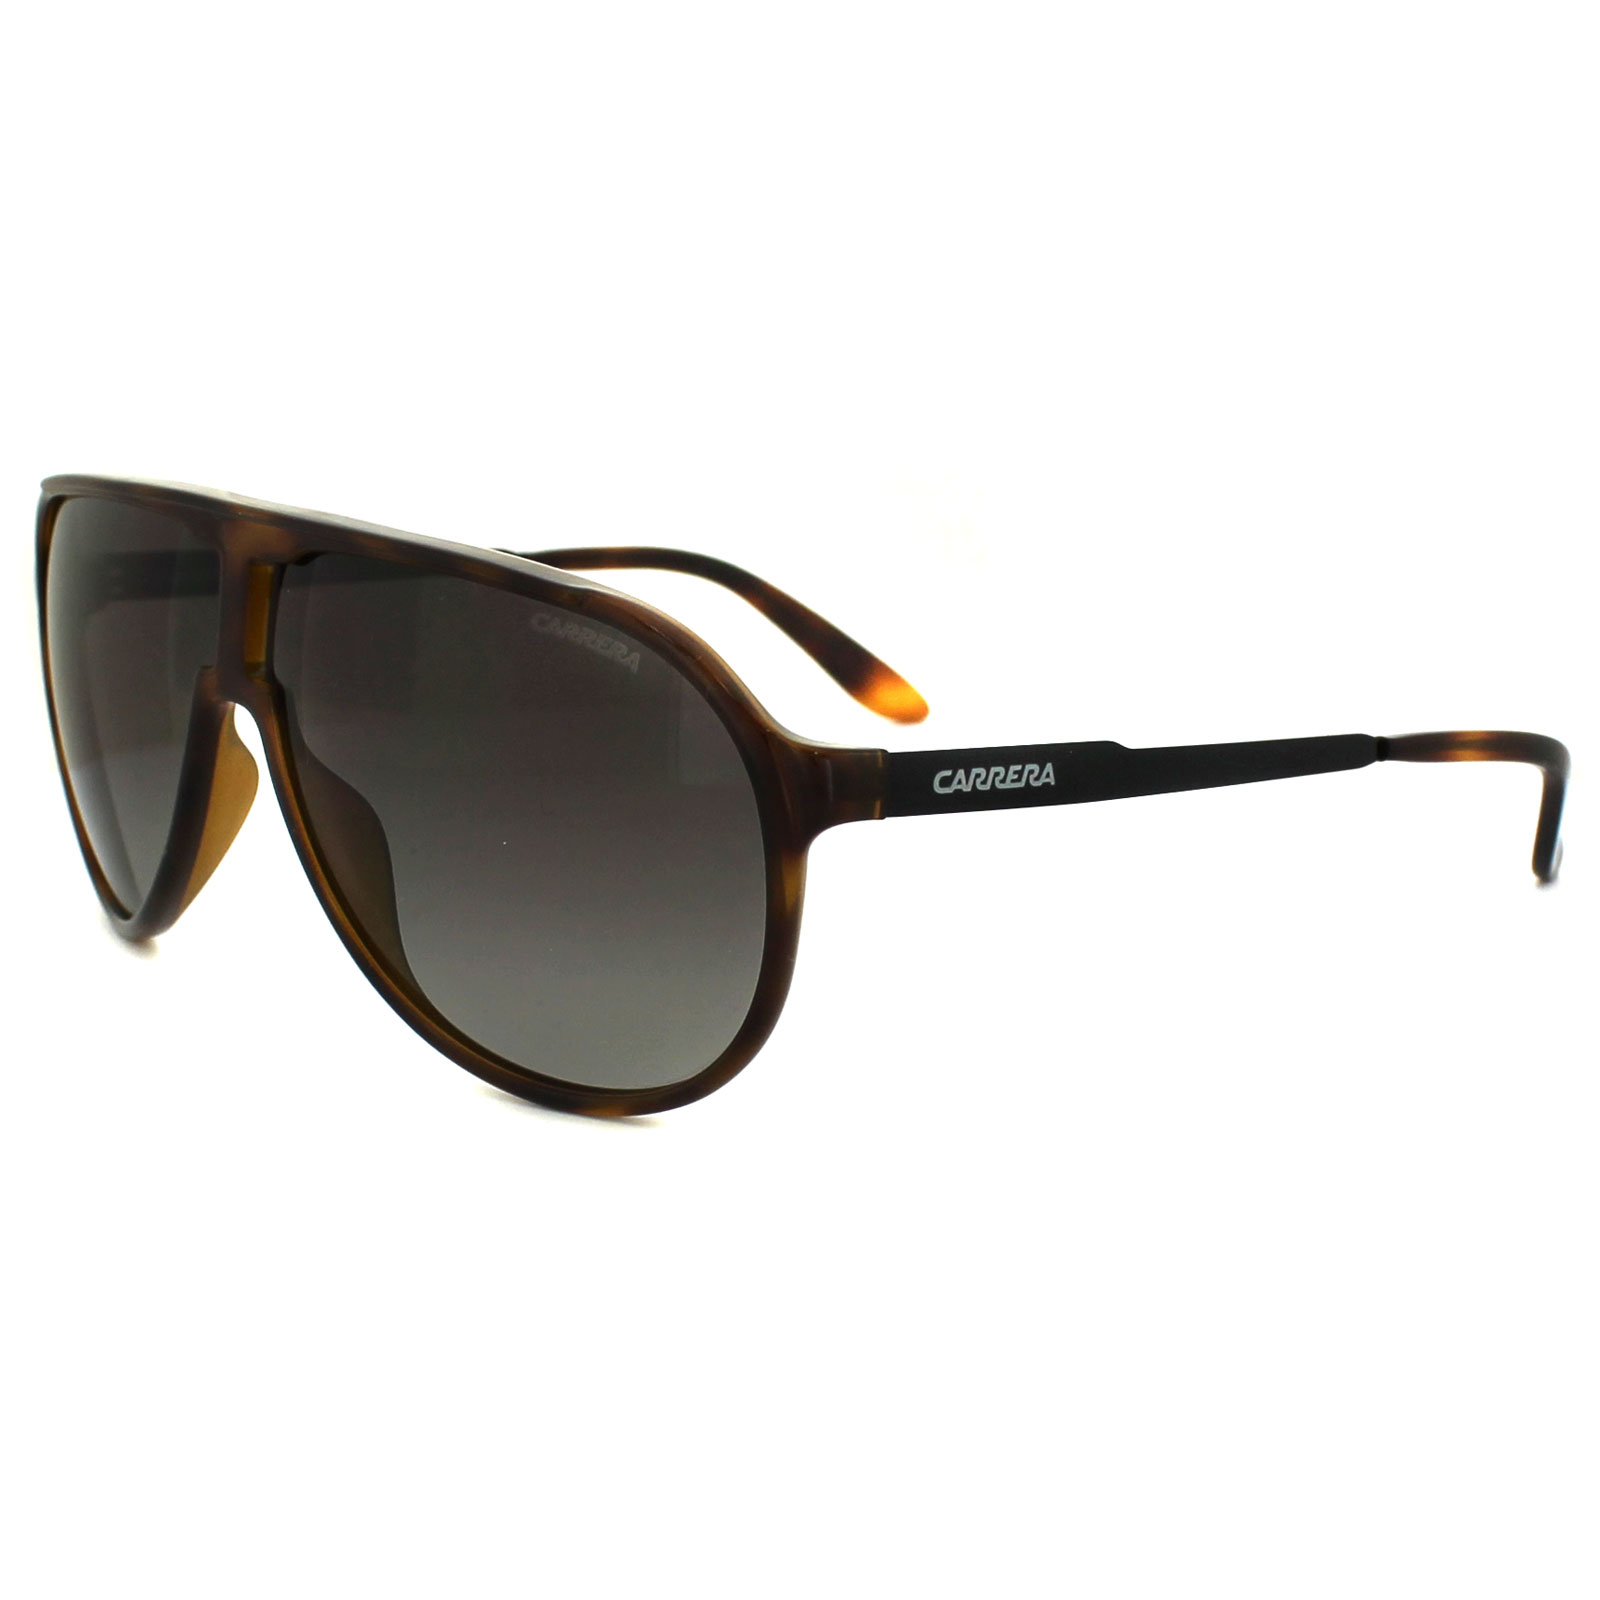 Cheap Carrera New Champion Sunglasses Discounted Sunglasses